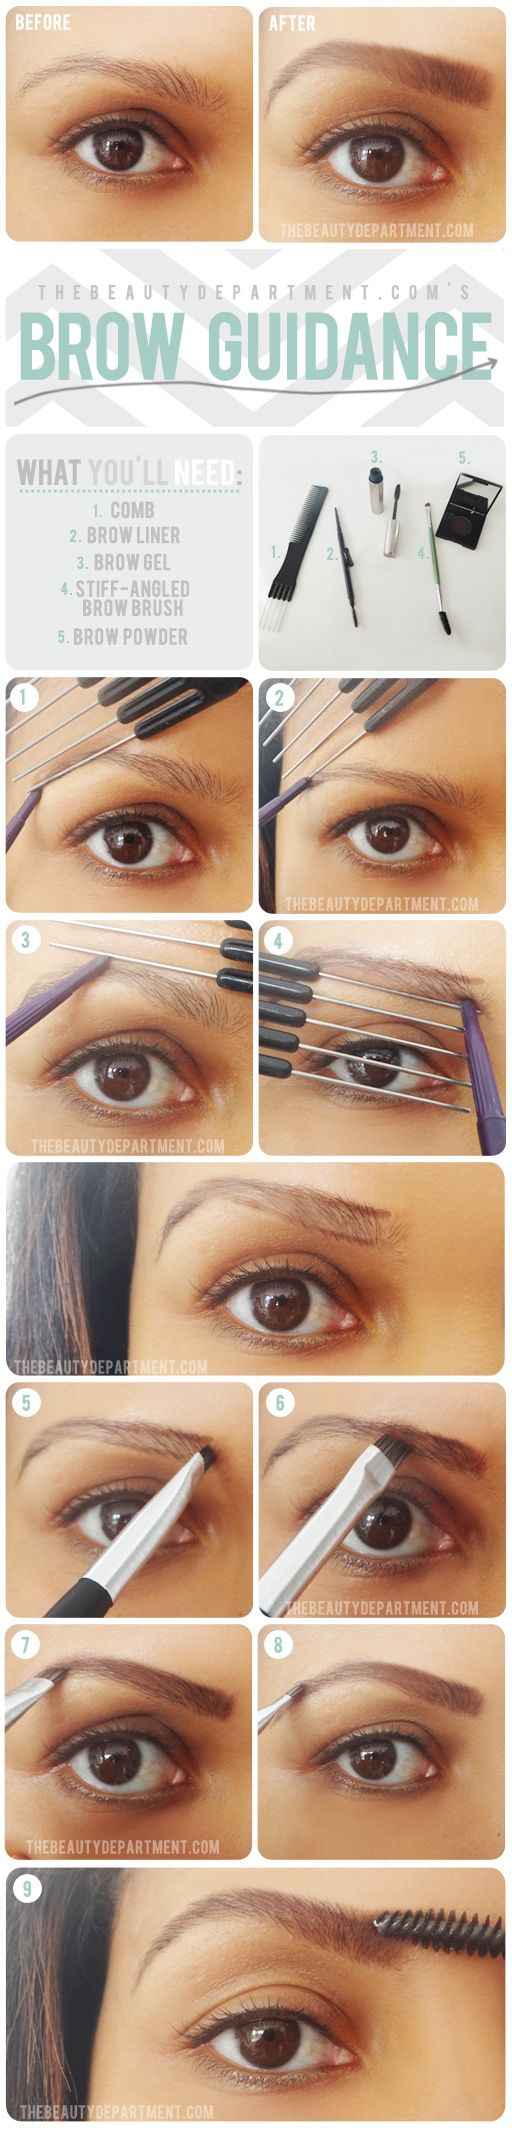 Eyebrows!